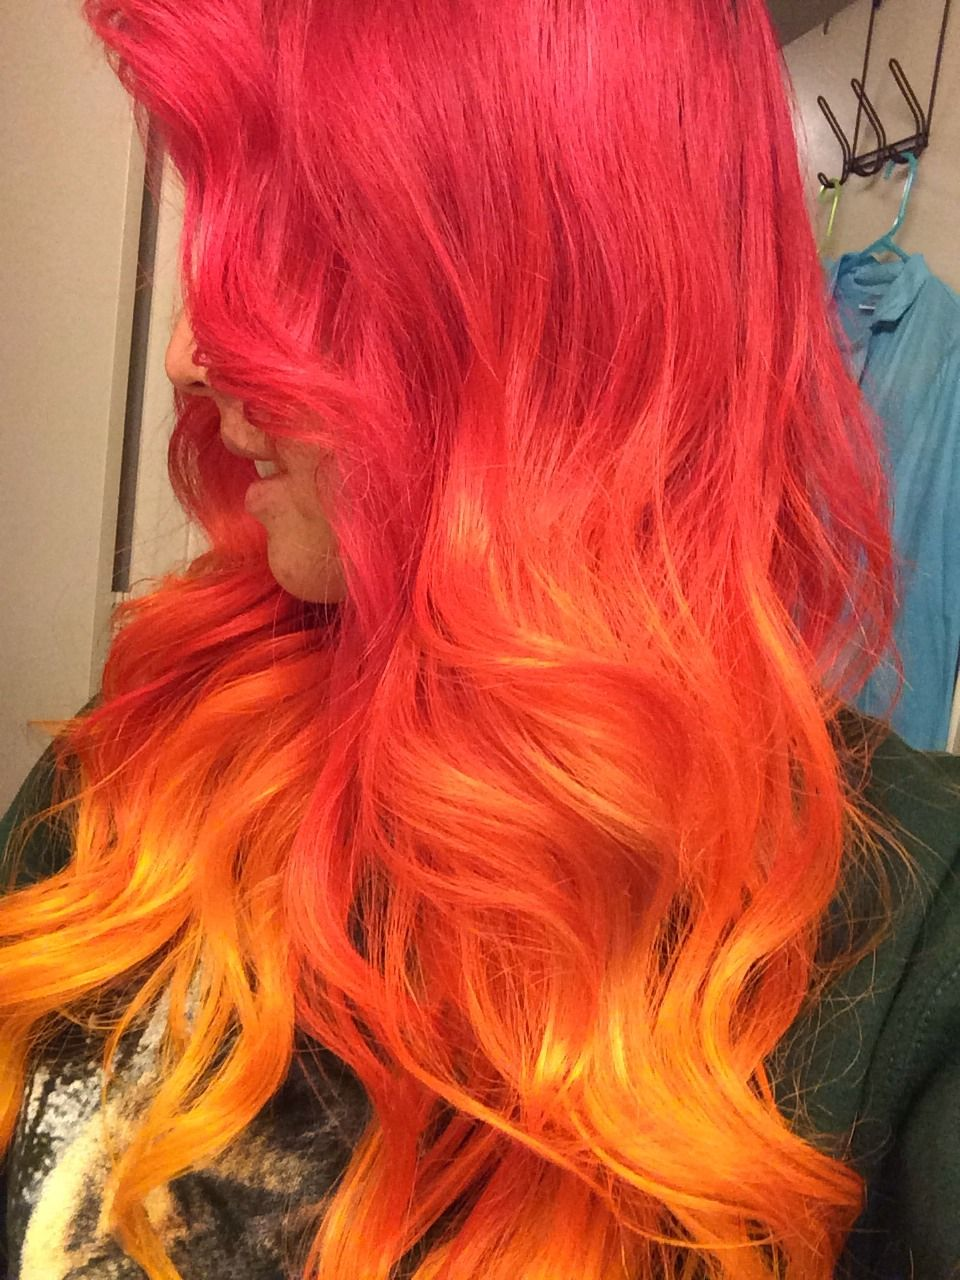 Red Ombre Hair Aka Fire Hair Yeaaaa In 2019 Red